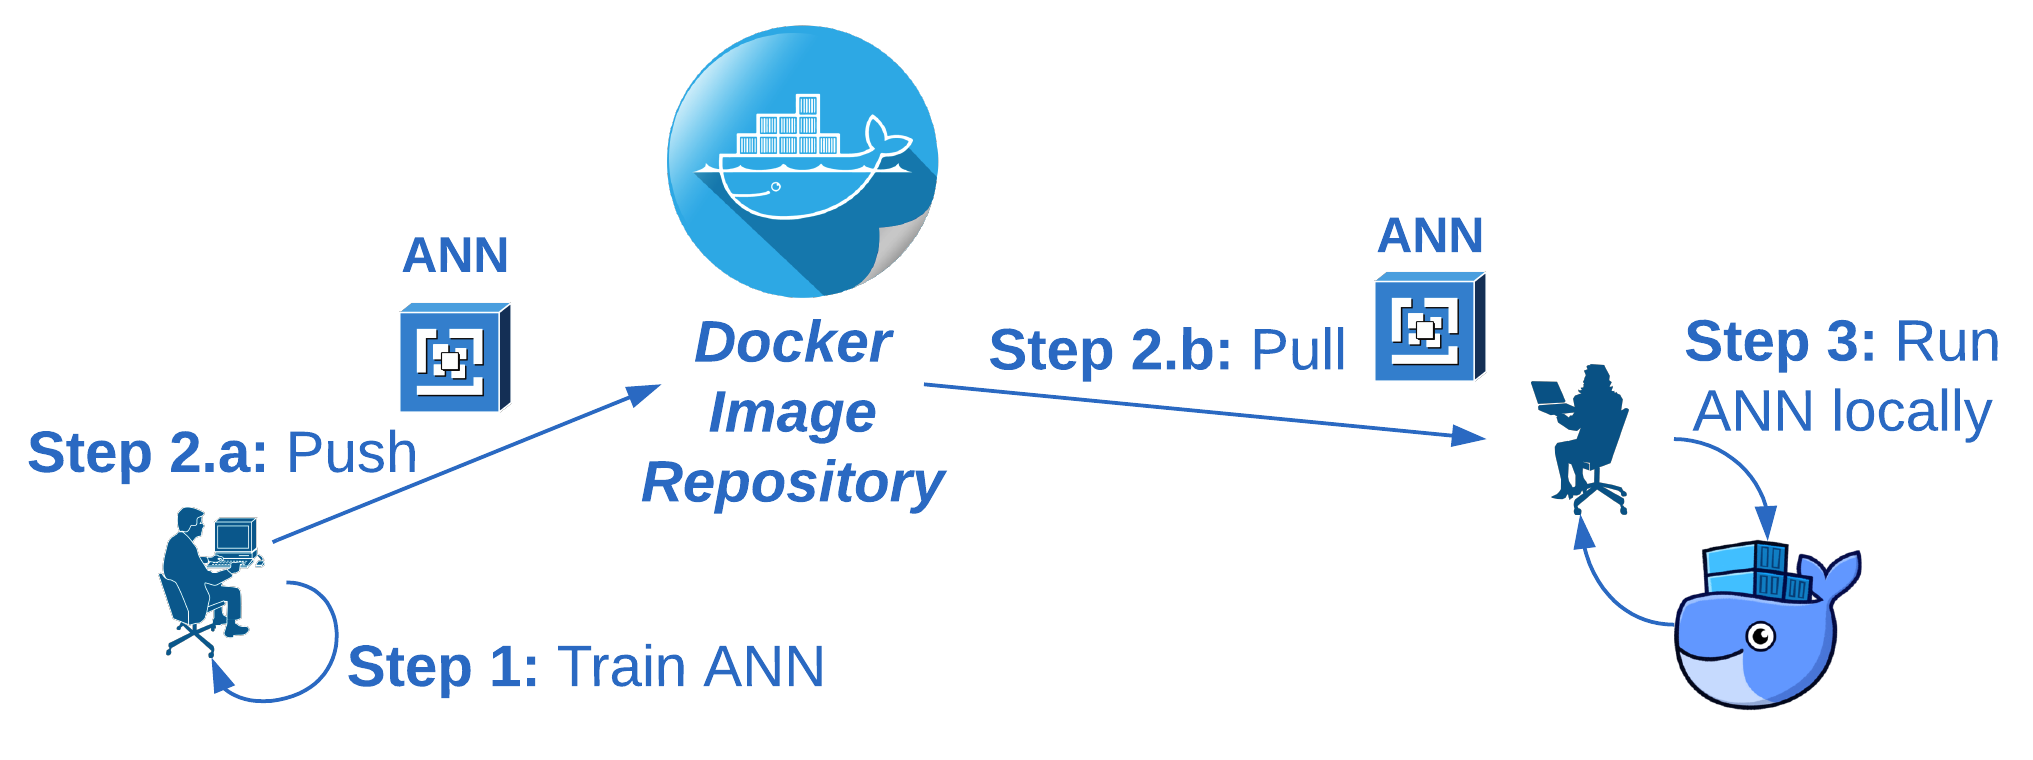 Running an Apache Spark Artificial Neural Network as a Docker Image